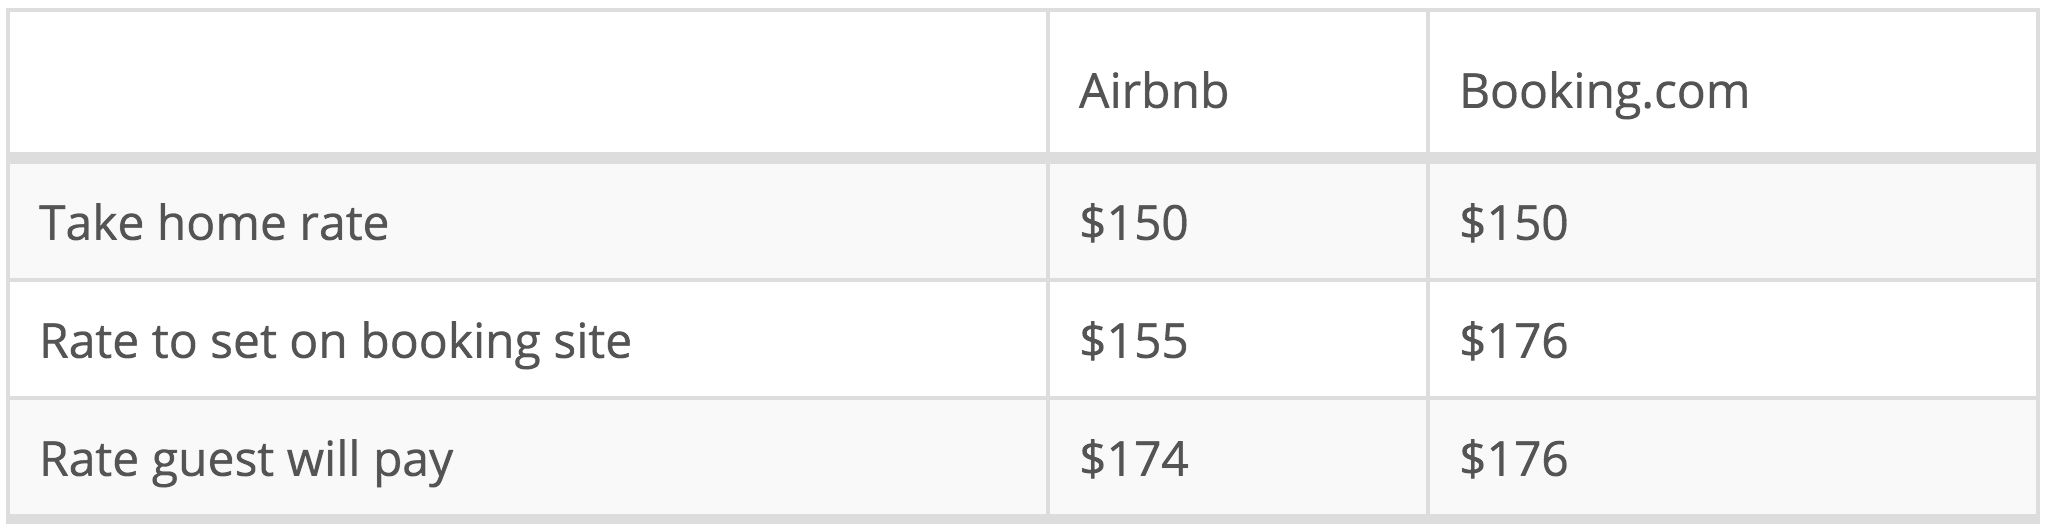 Calculation-of-rates-to-set-on-booking-sites-when-the-rate-you-want-to-earn--take-home-rate--is--150.-Note-numbers-are-rounded-as-Airbnb-doesn-t-support-decimals.